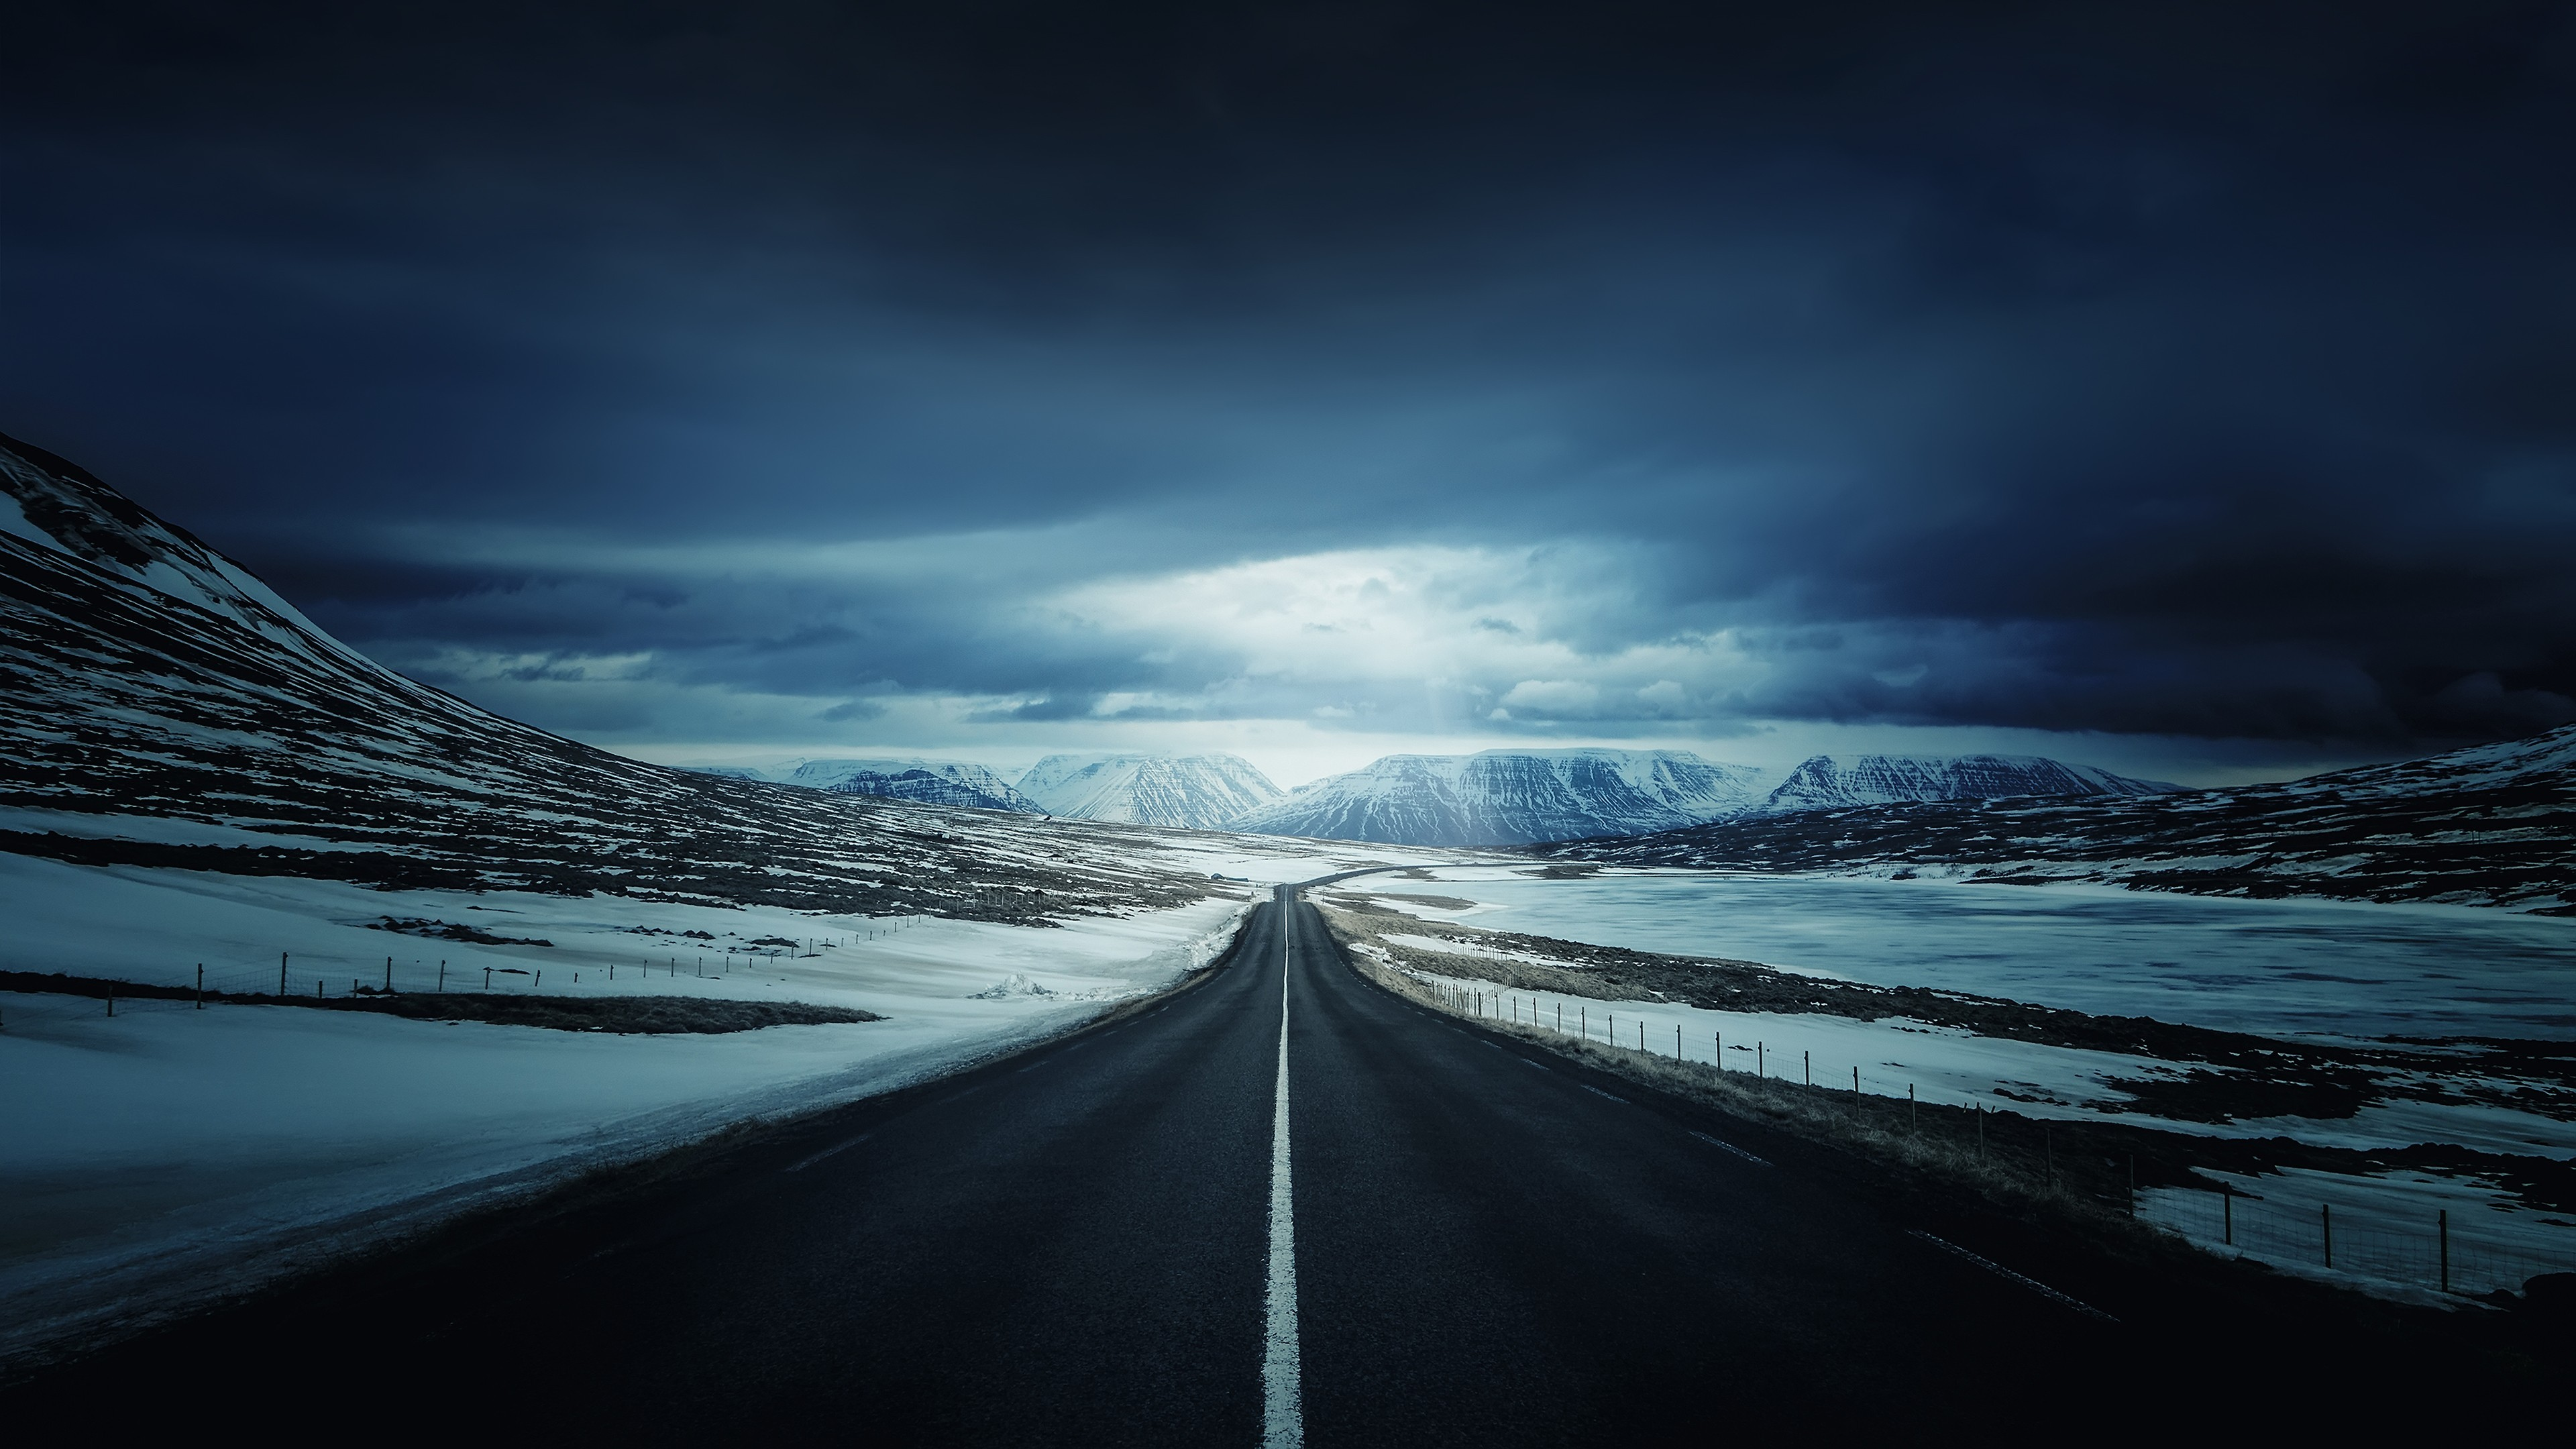 road iceland clouds highway mountains landscape 4k 1540139295 - Road Iceland Clouds Highway Mountains Landscape 4k - winter wallpapers, road wallpapers, nature wallpapers, mountains wallpapers, landscape wallpapers, highway wallpapers, hd-wallpapers, clouds wallpapers, 4k-wallpapers